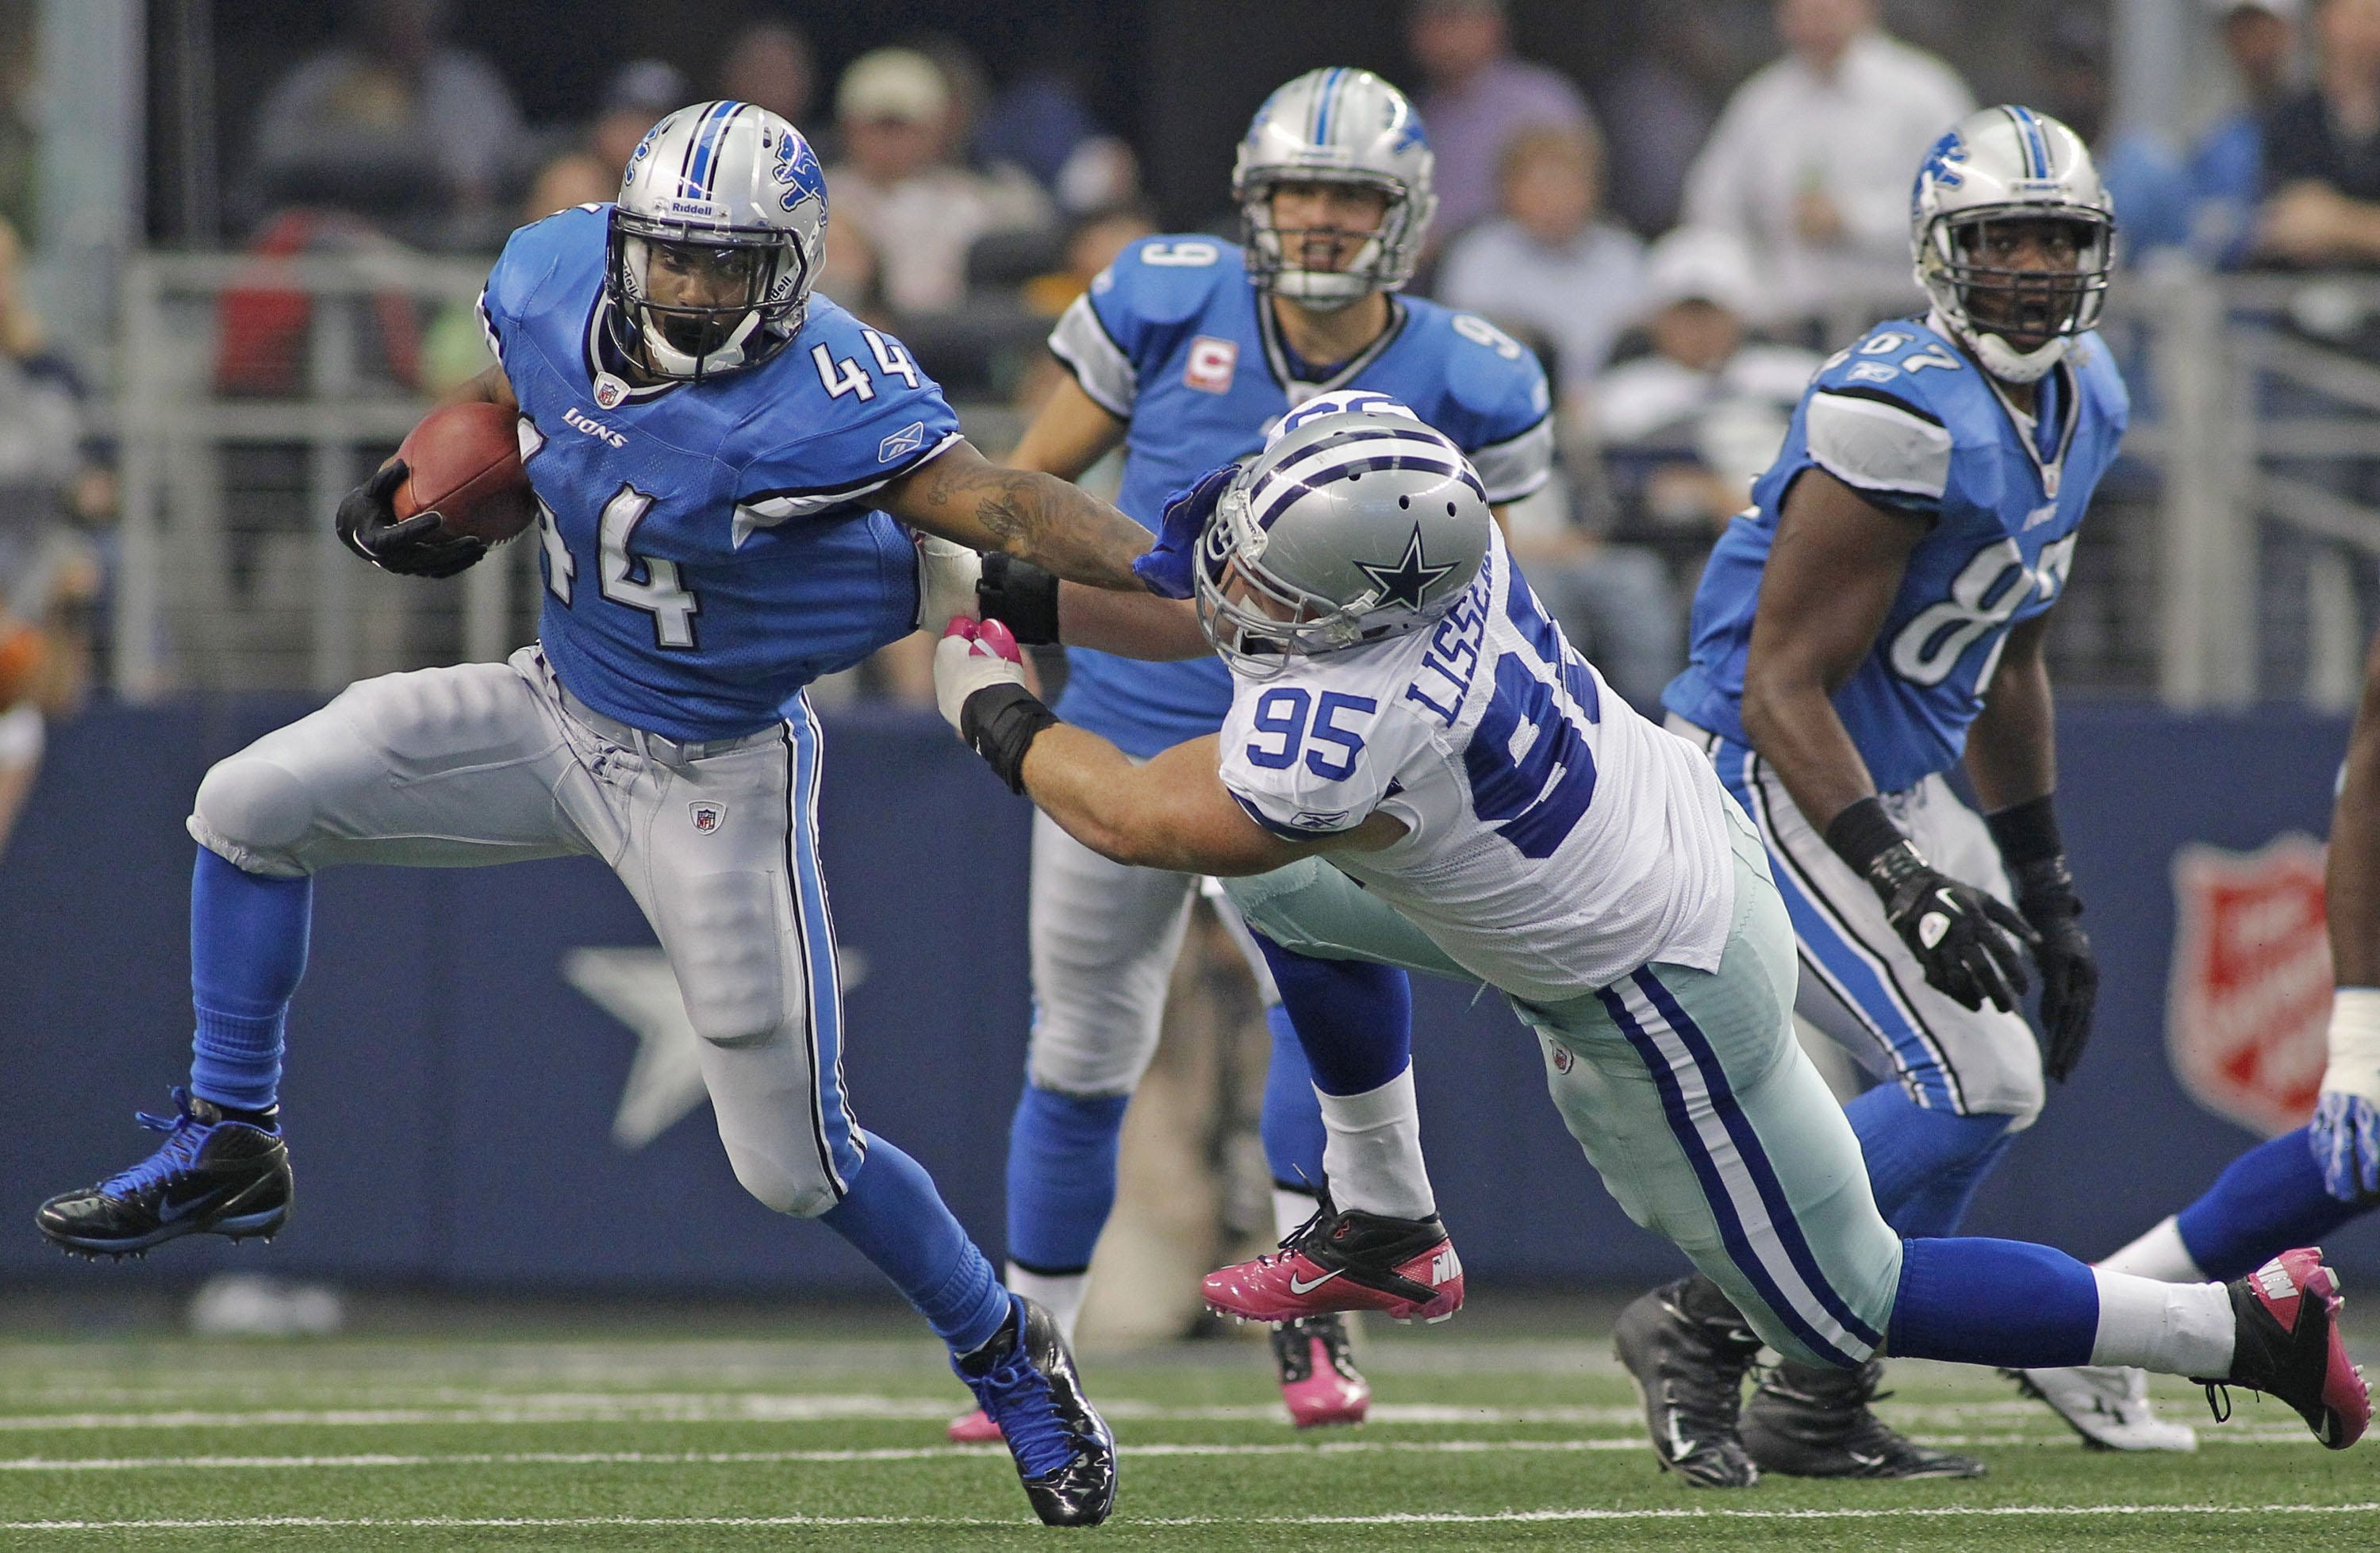 No pads? No problem for ex-Lion Jahvid Best, who retired with head injury